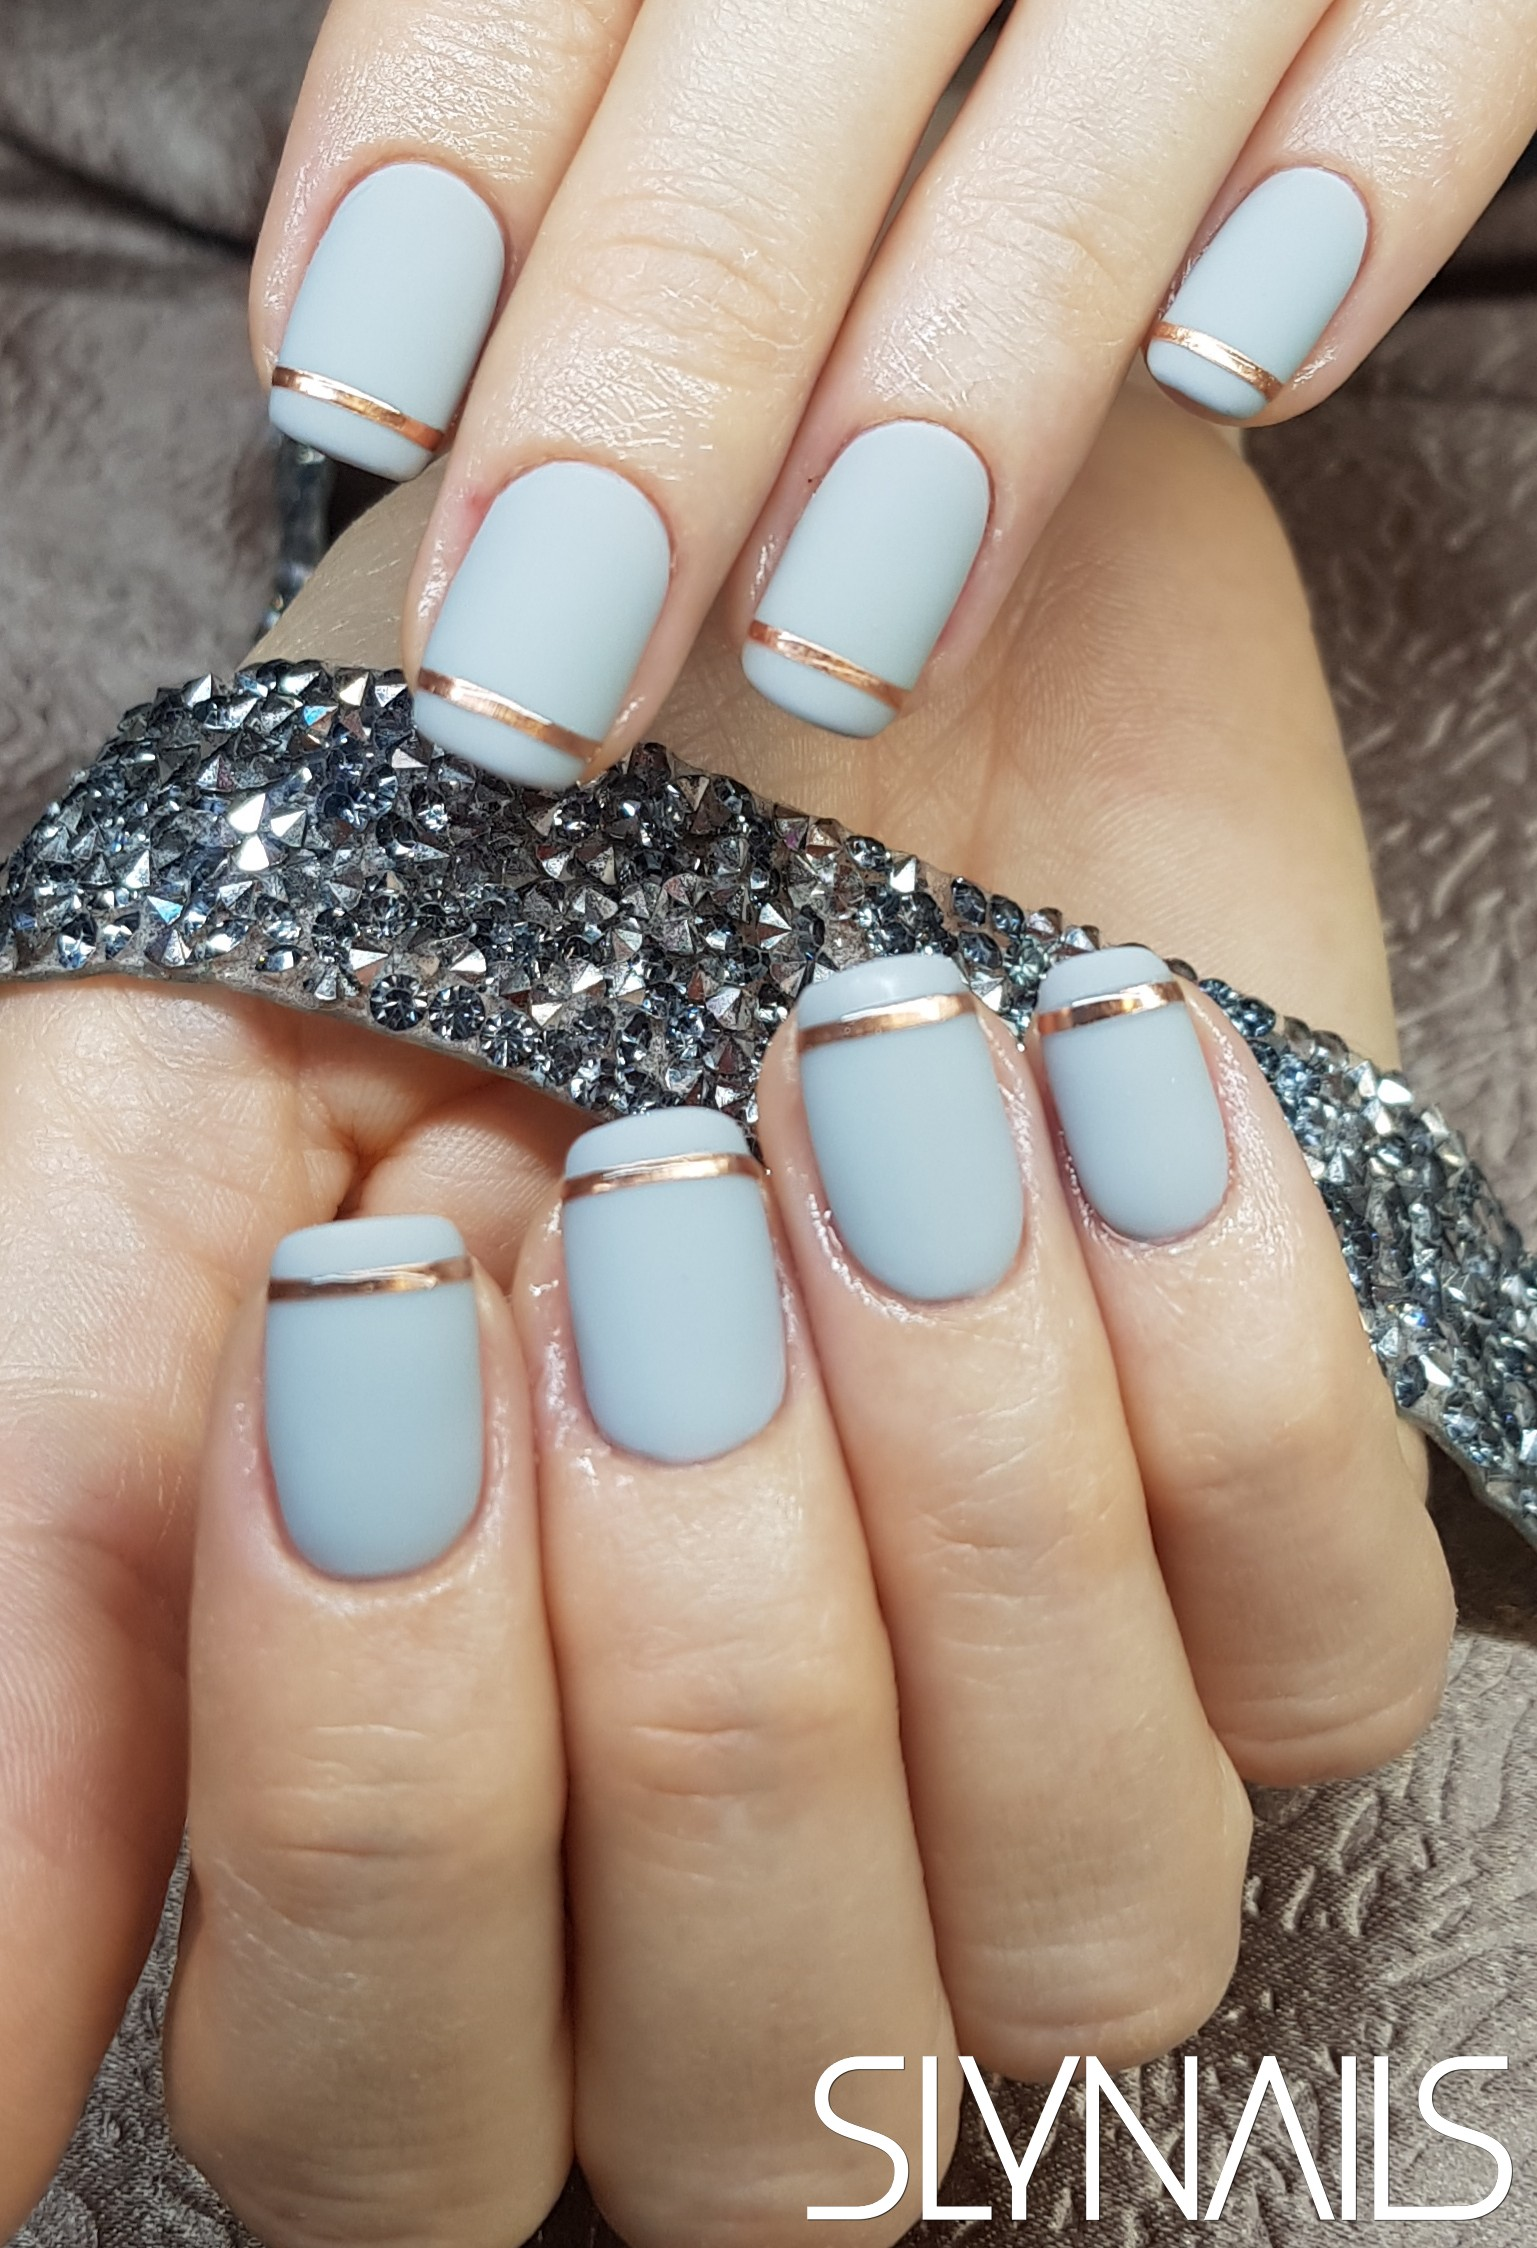 Gel-lac (gel polish), Grey, One color, Sticker, Matte, Square